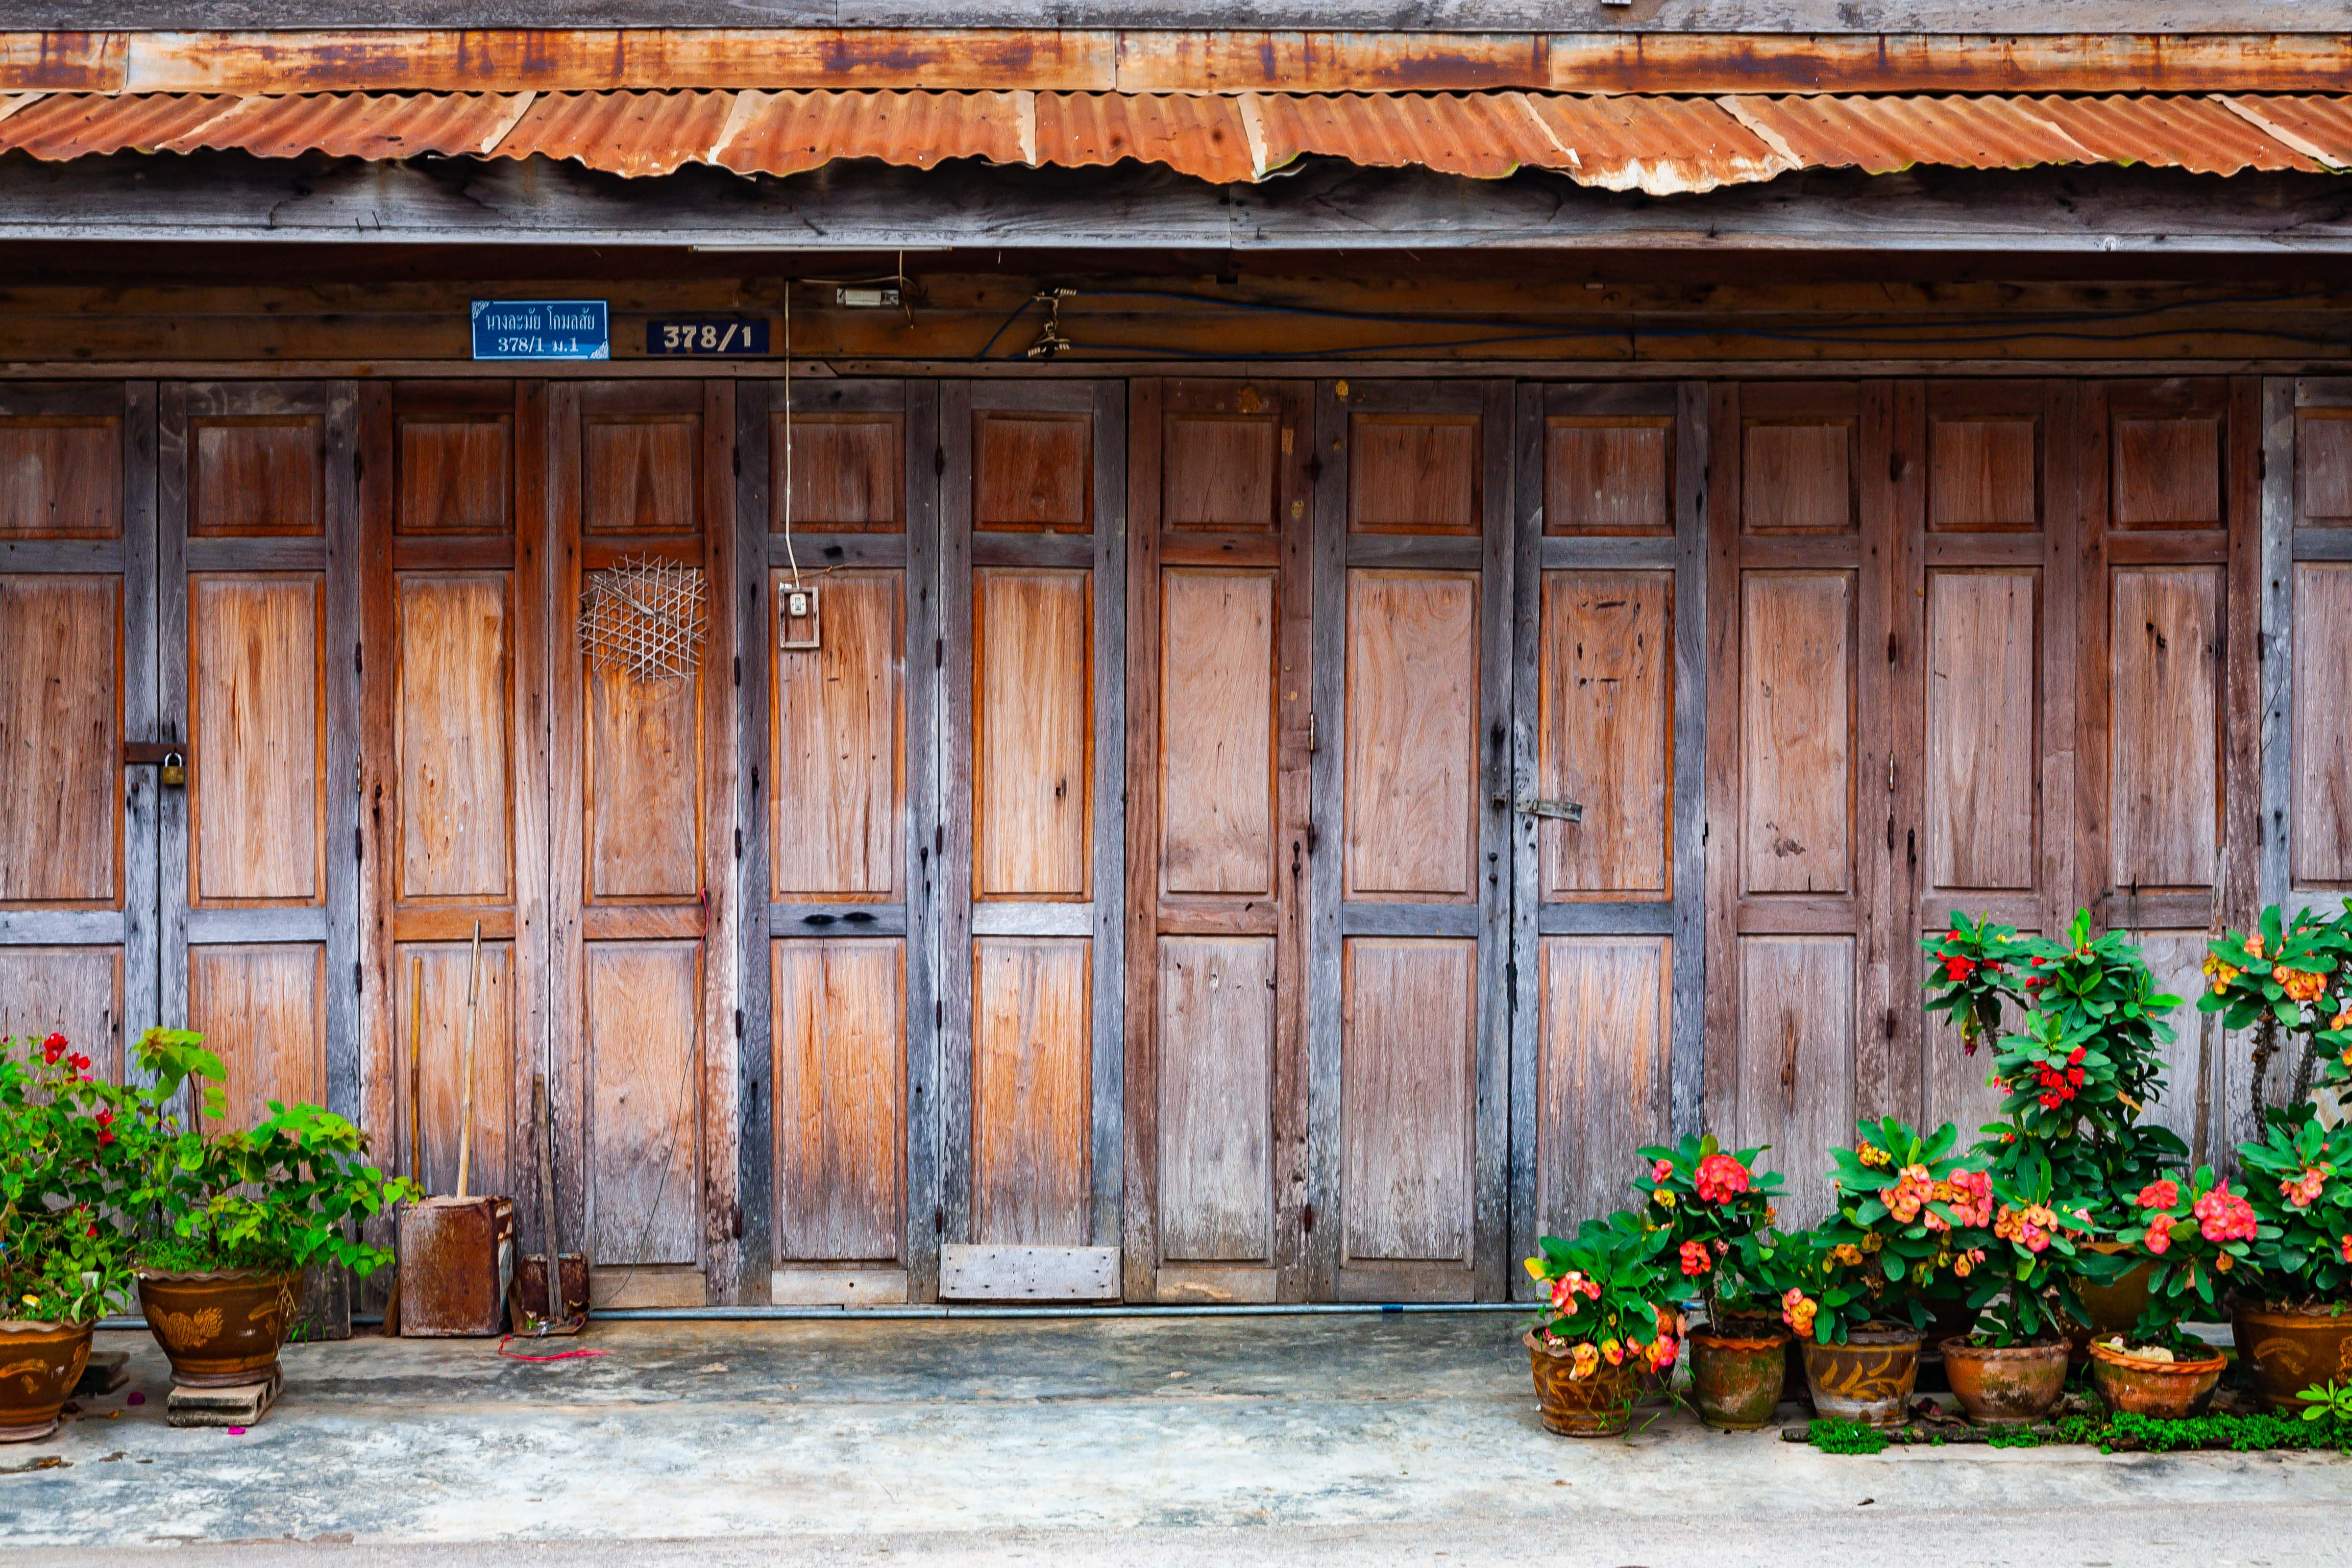 Thailand, Loei Prov, Chiang Khan Housefront, 2008, IMG 6415